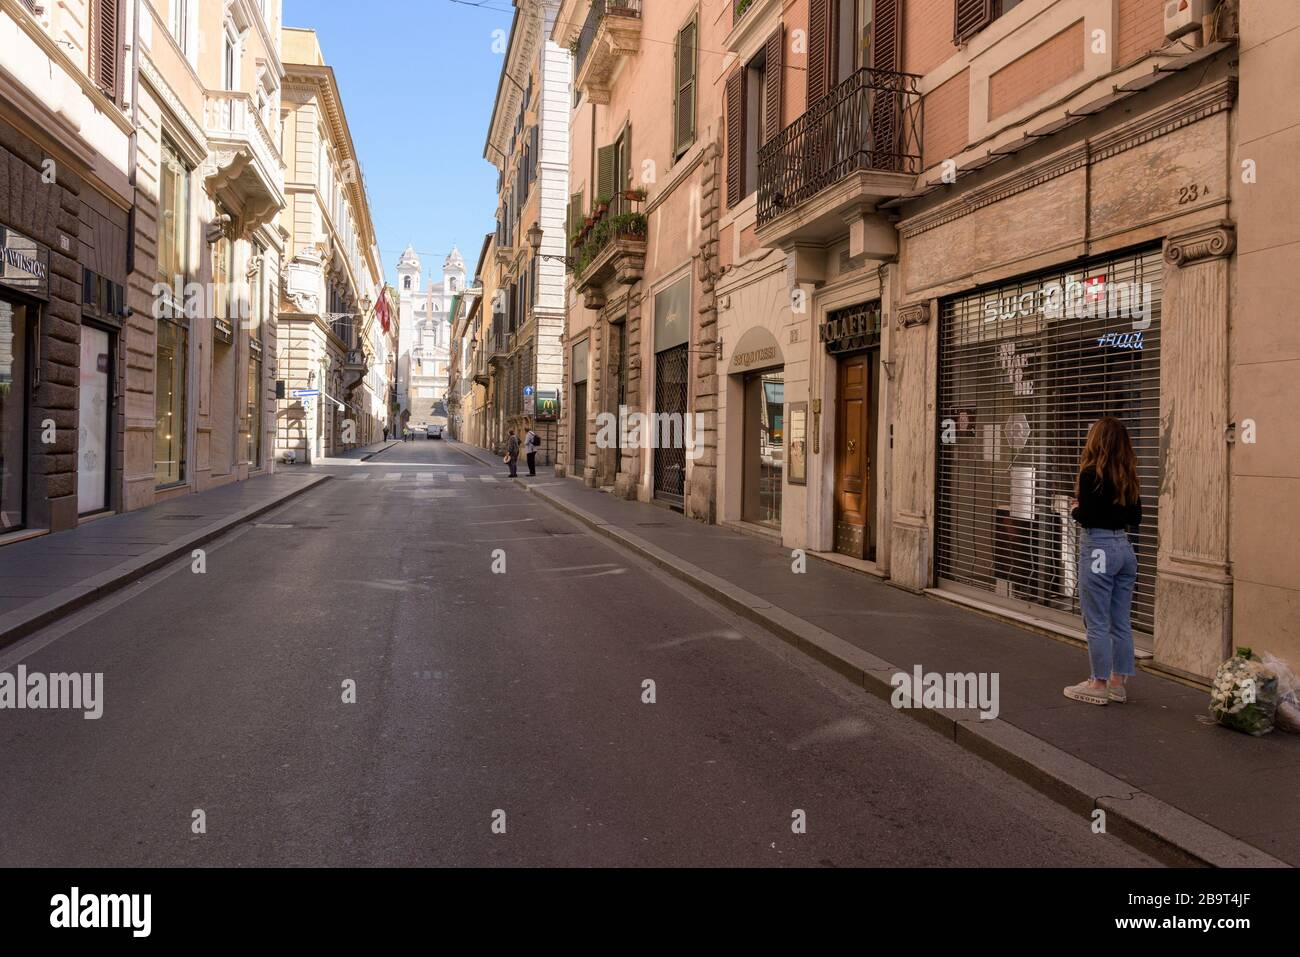 ROME, ITALY - 12 March 2020: A woman stands in front of closed shops in Via dei Condotti, next to the Spanish Steps, Rome, Italy. One must justify the Stock Photo